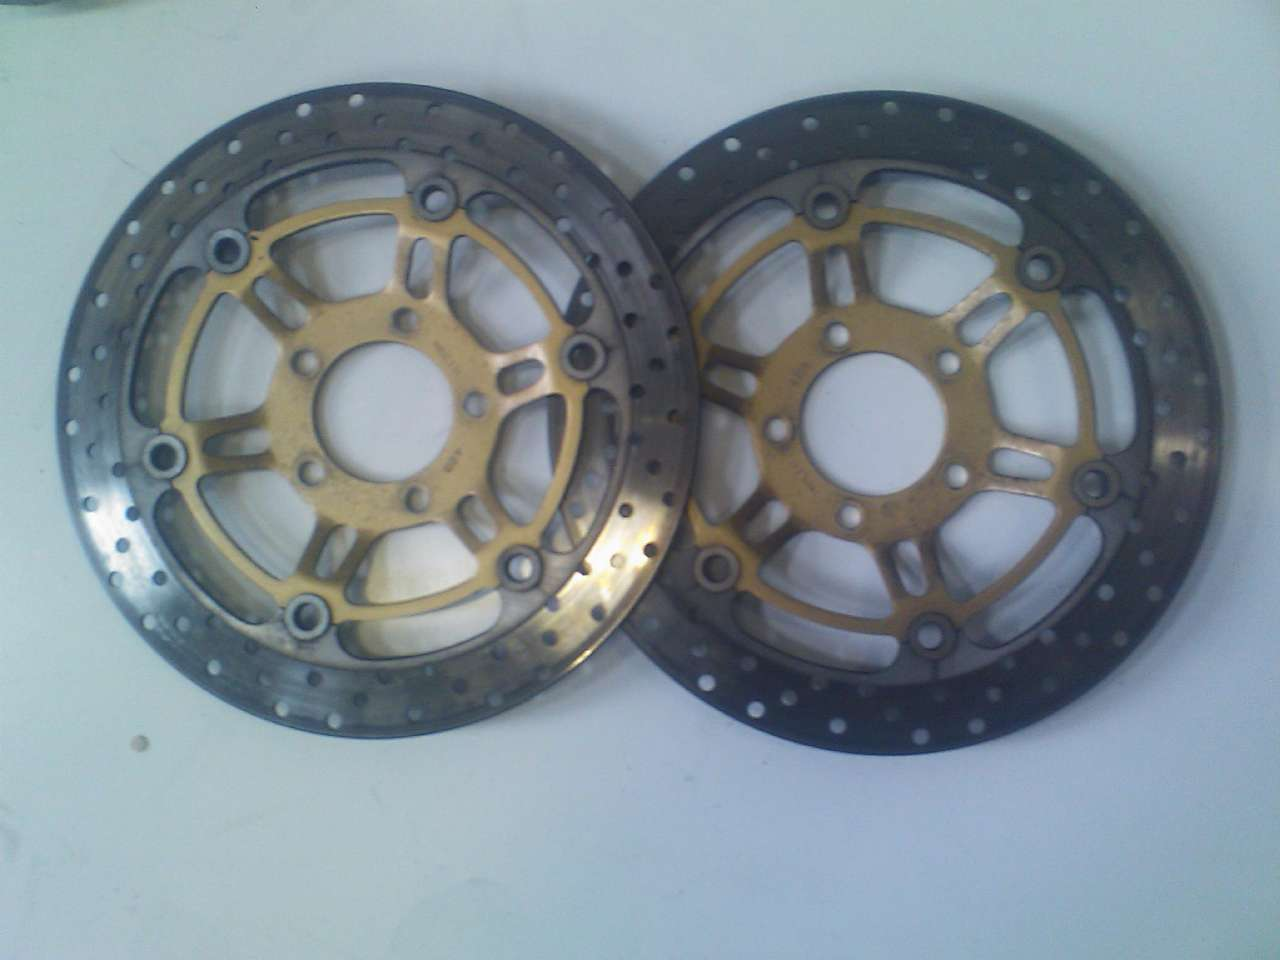 Brake disc set Suzuki SV 650